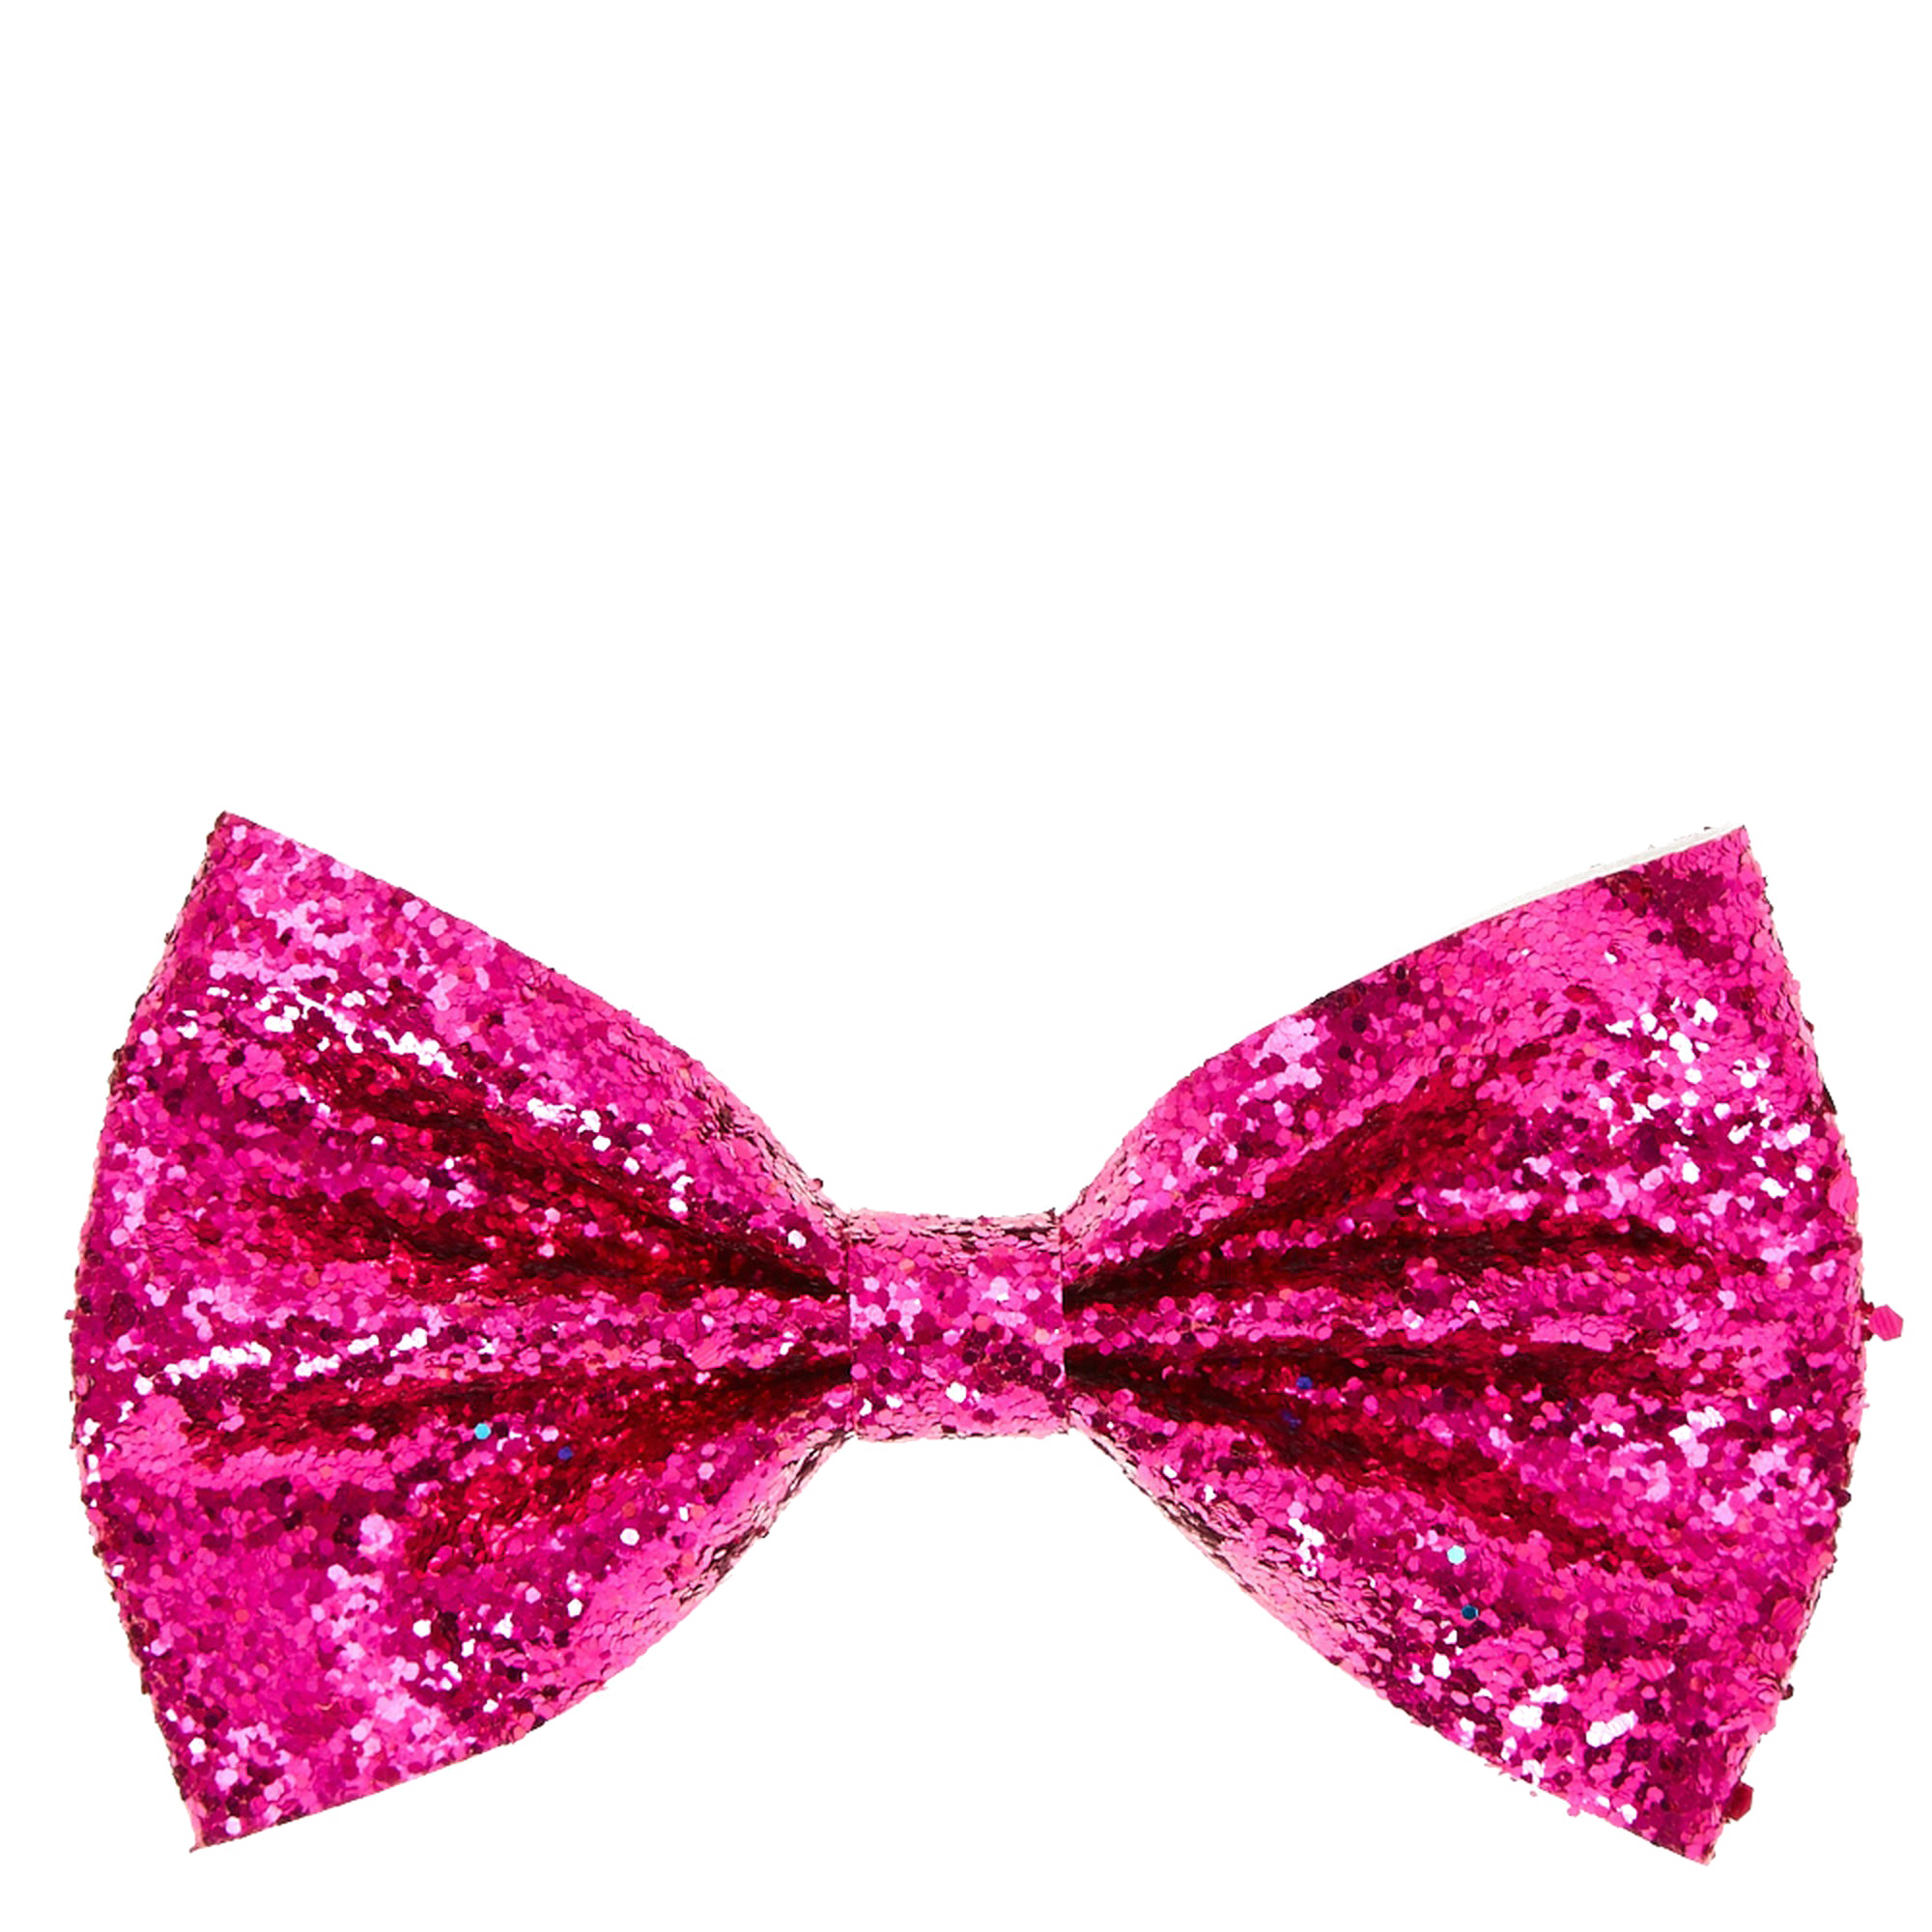 Png Of Bow - Bow PNG Transparent Image | PNG Arts